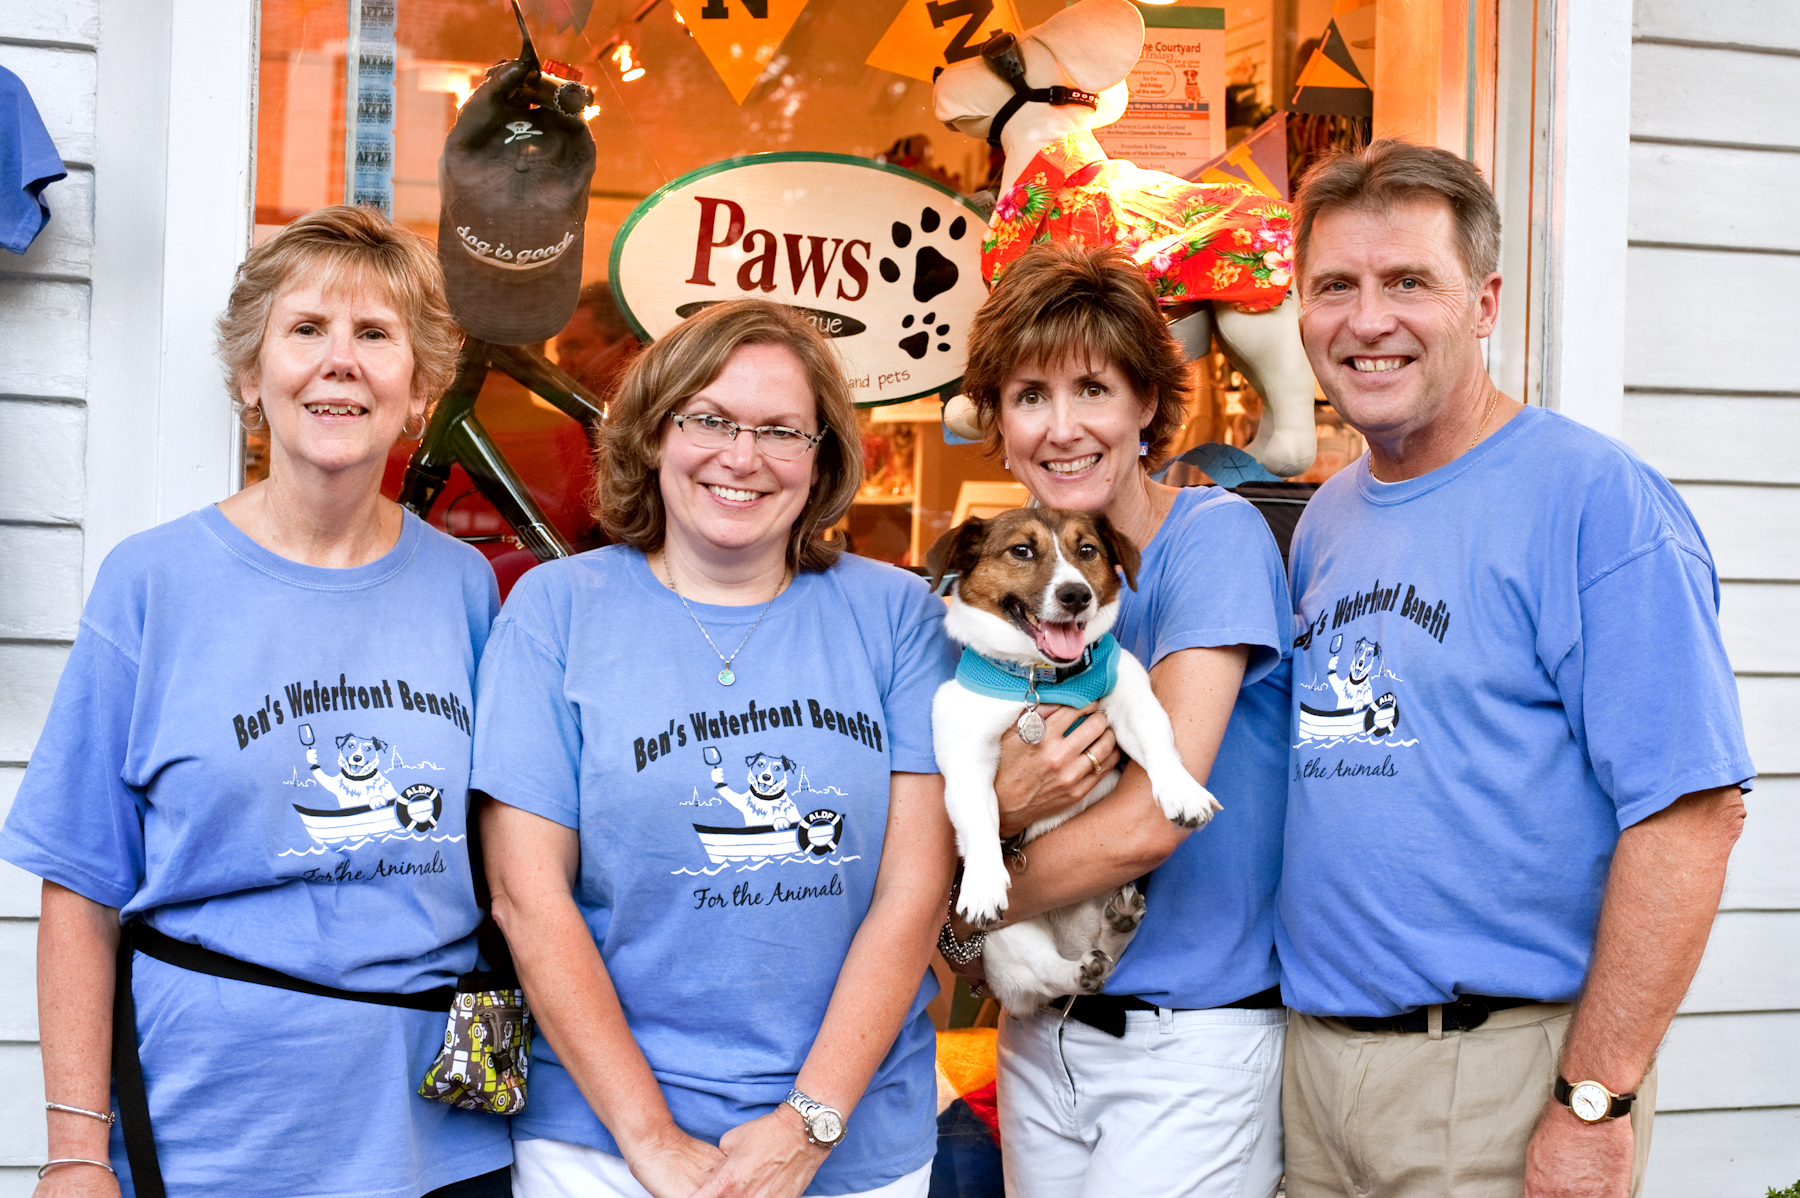 Bens Benefit Shirts Give Back to the Animals